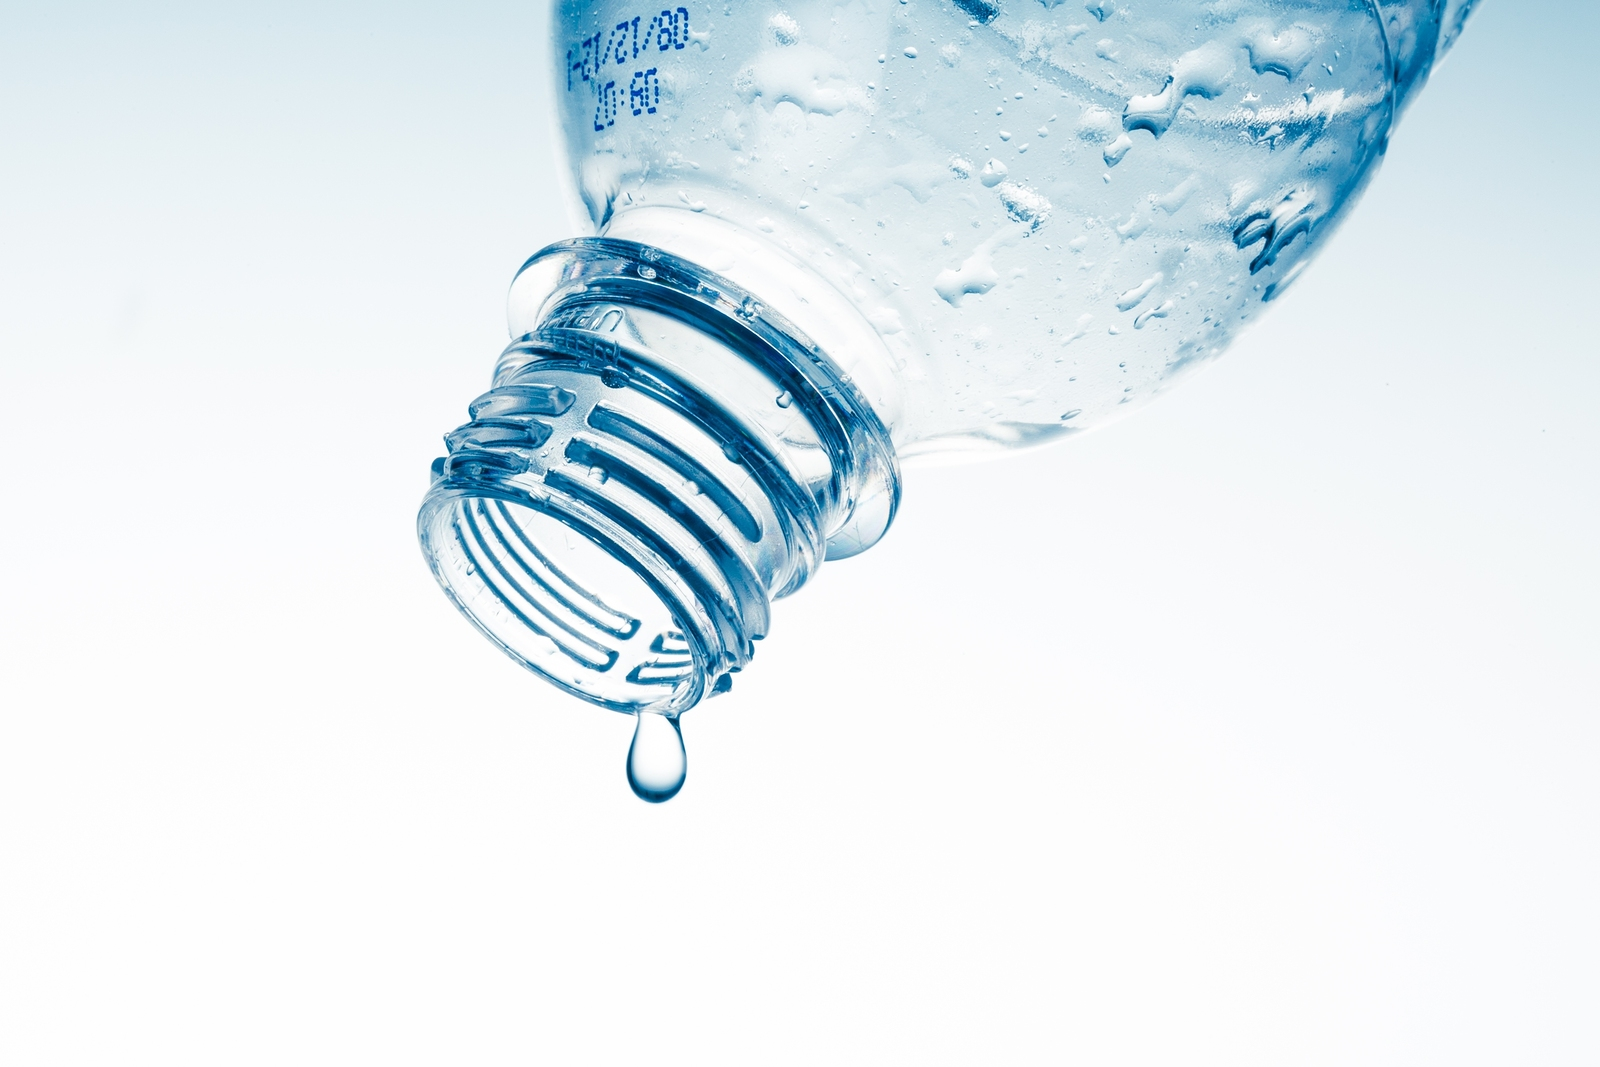 About Our Water